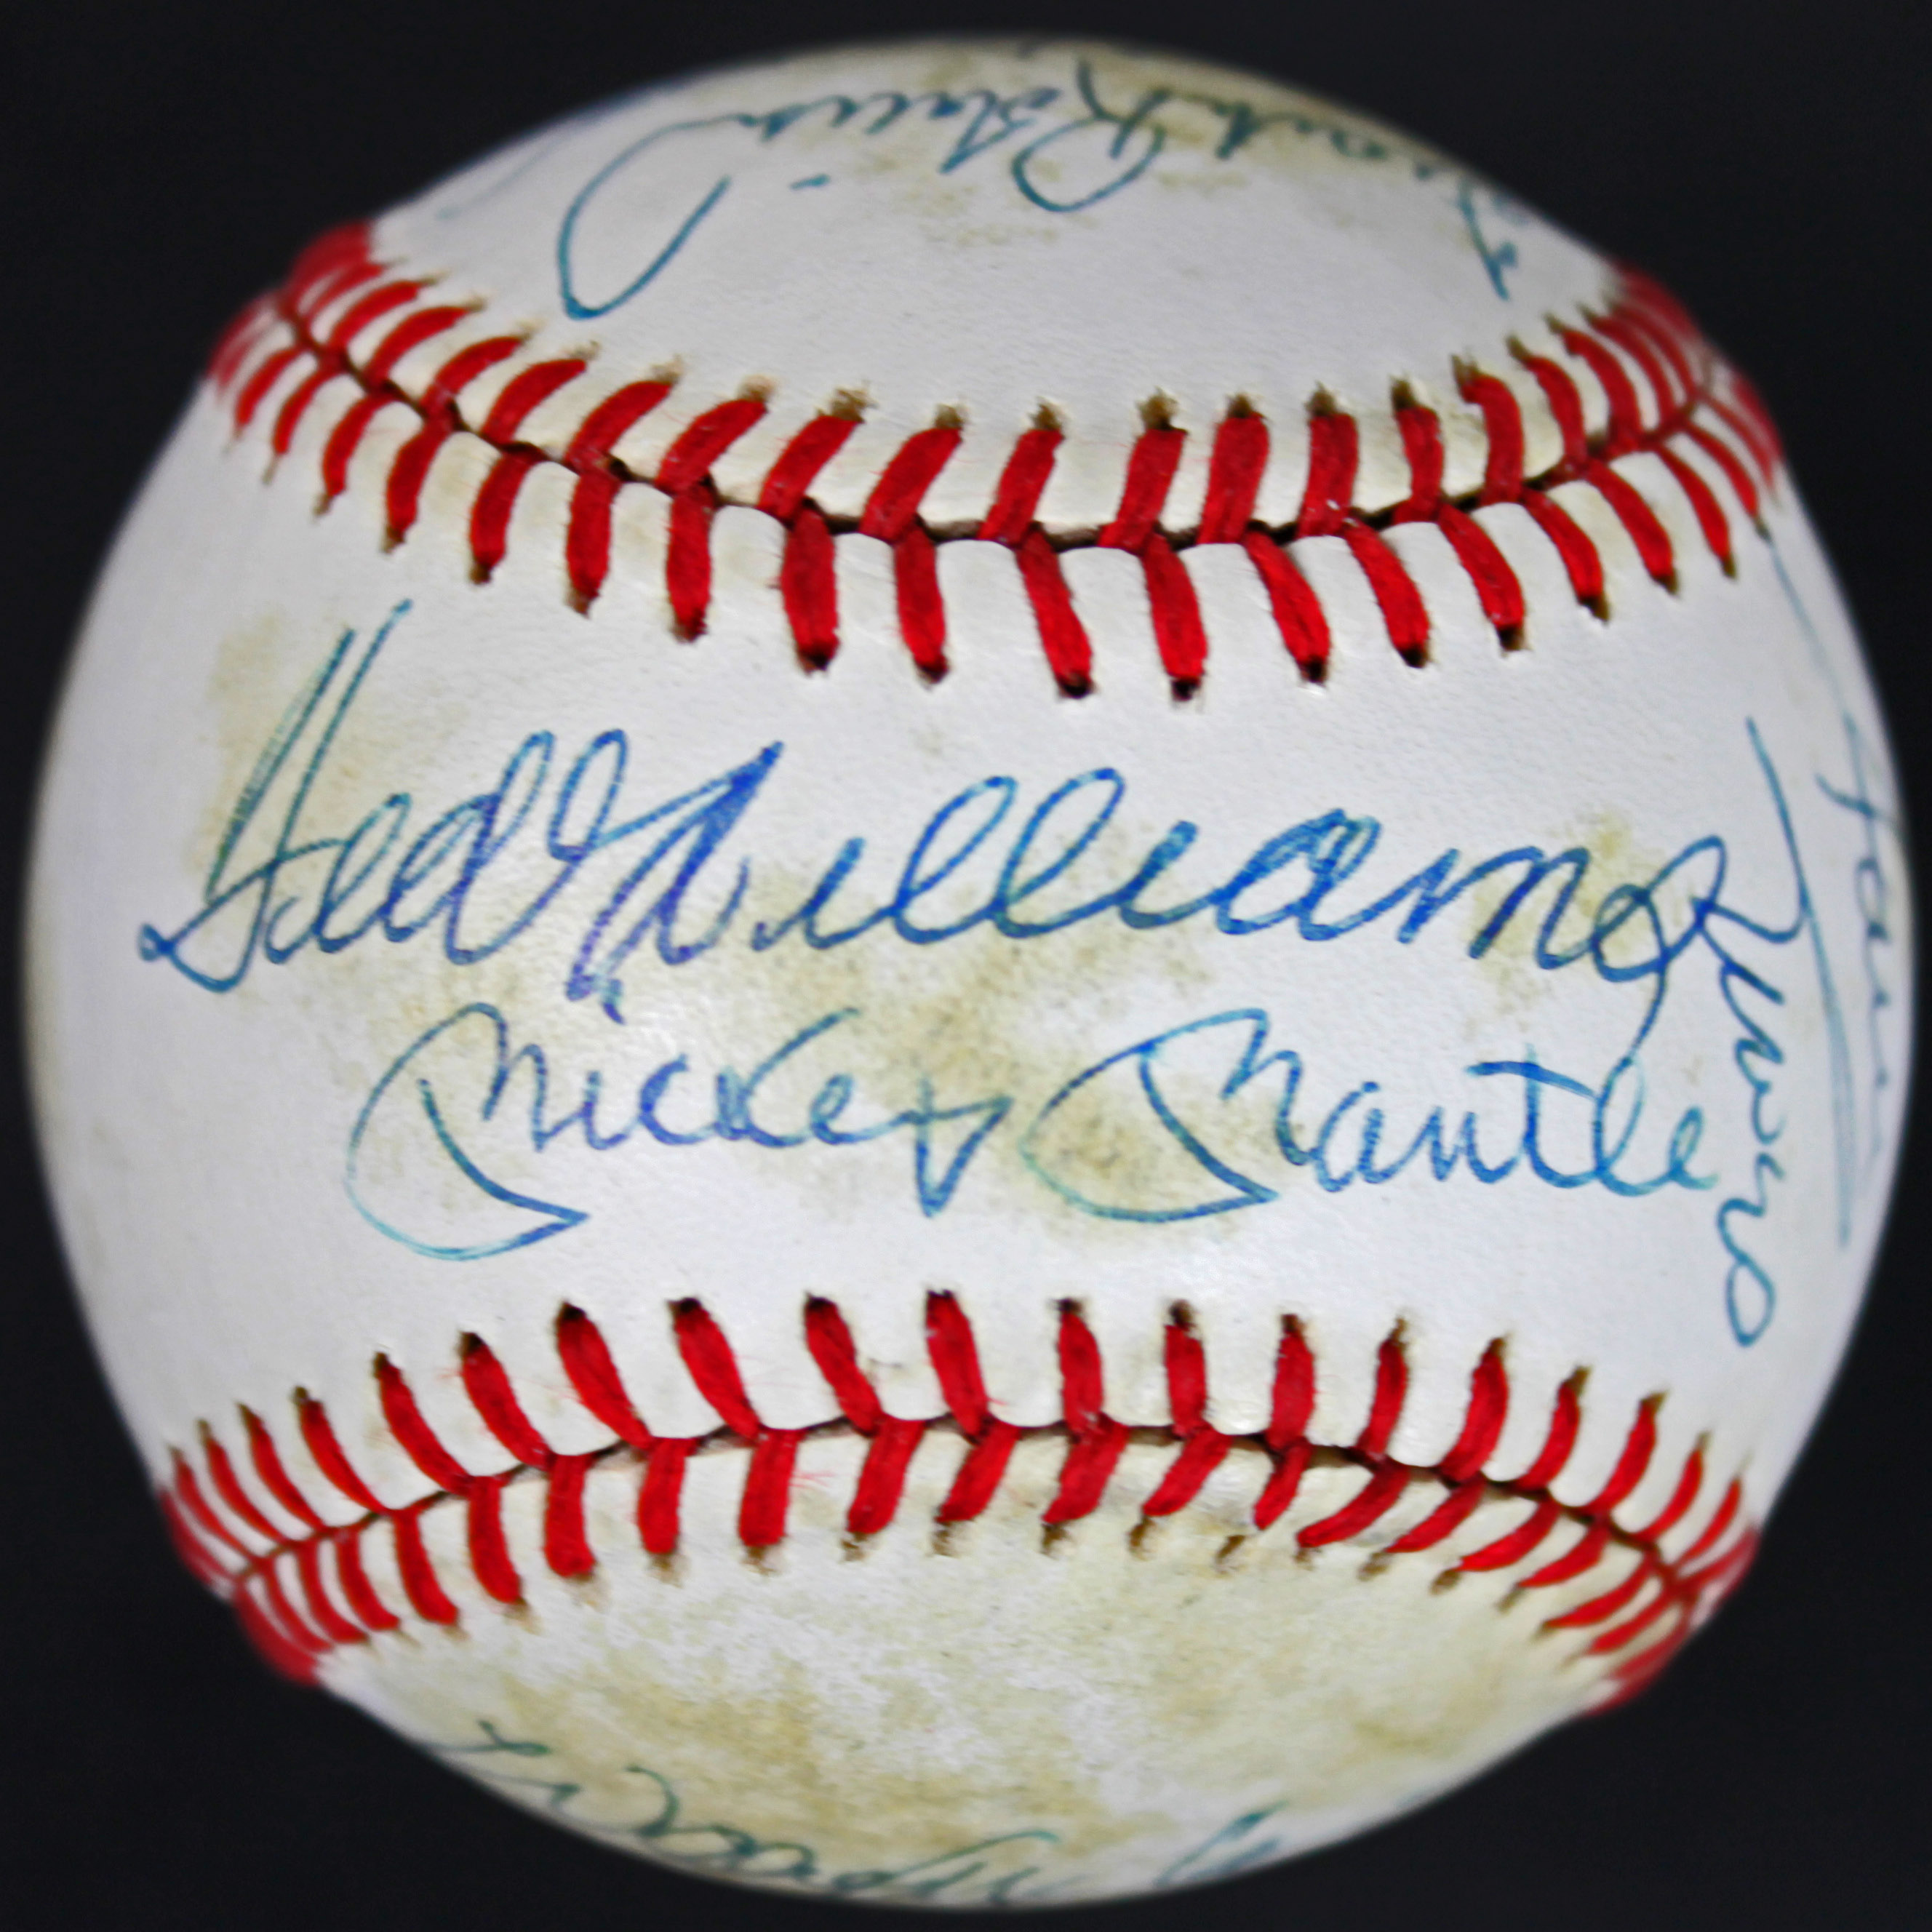 500 Home Run Club (13) Mantle, Williams, Aaron Signed Oml Baseball Jsa #y28463